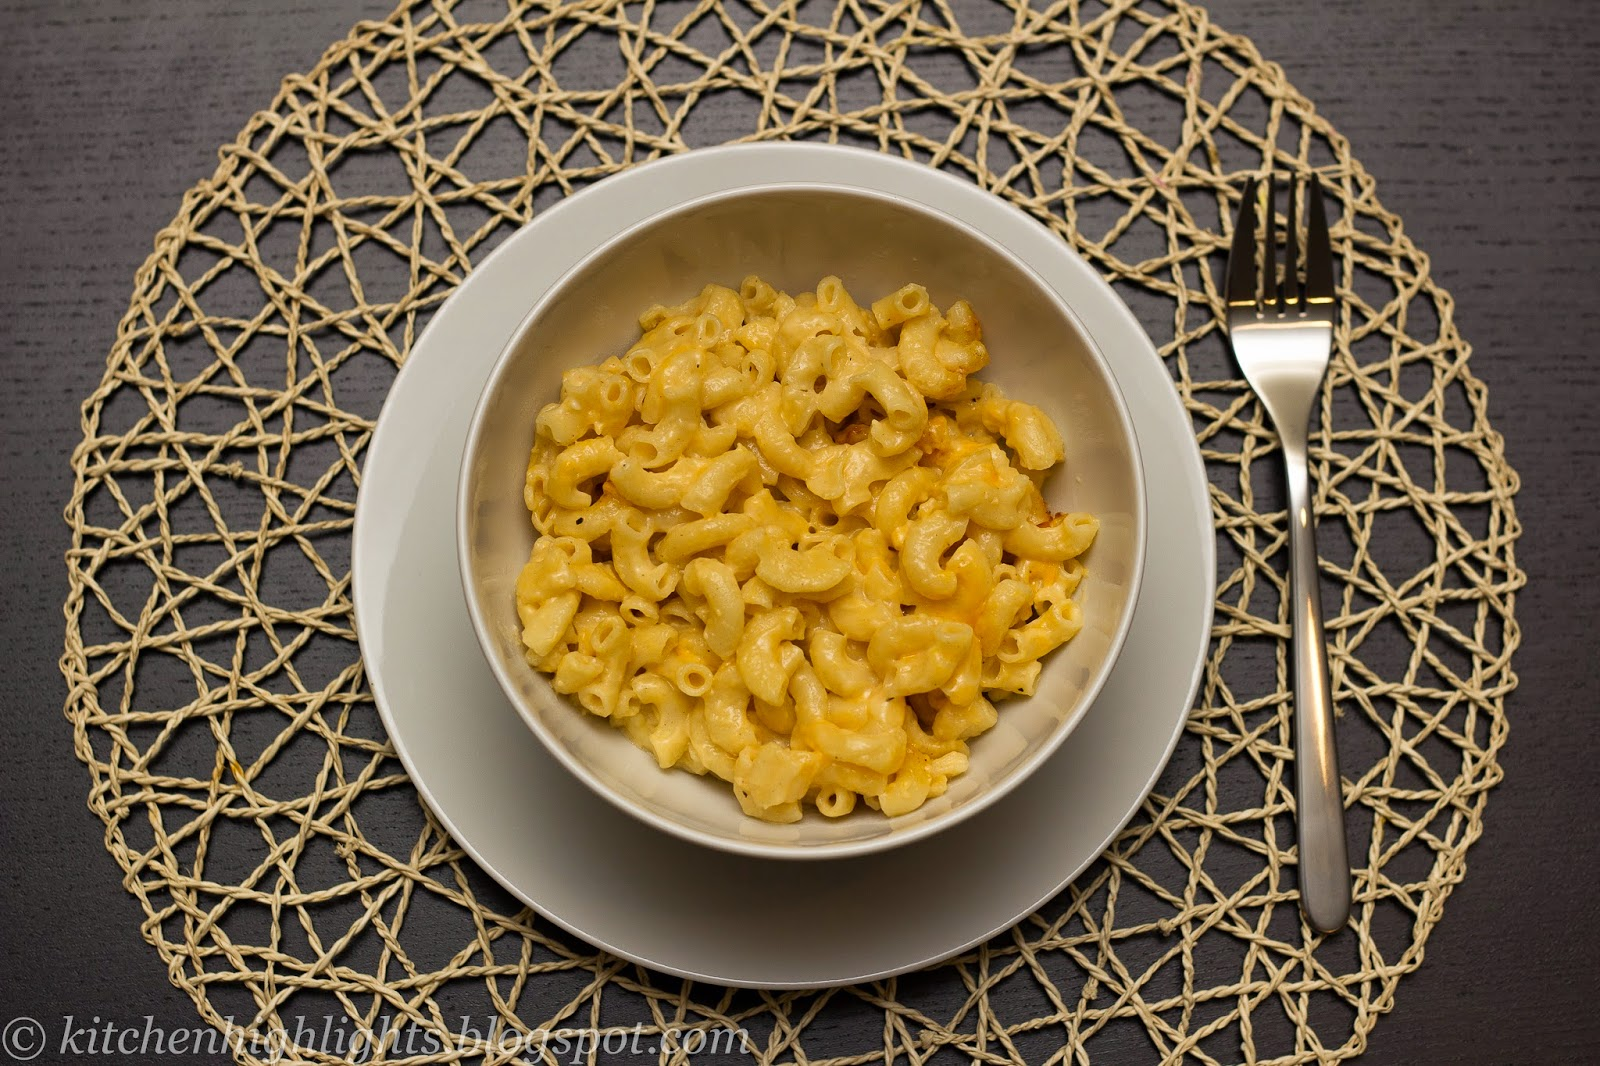 This recipe learns you how to get the perfect creamy macaroni and cheese consistency